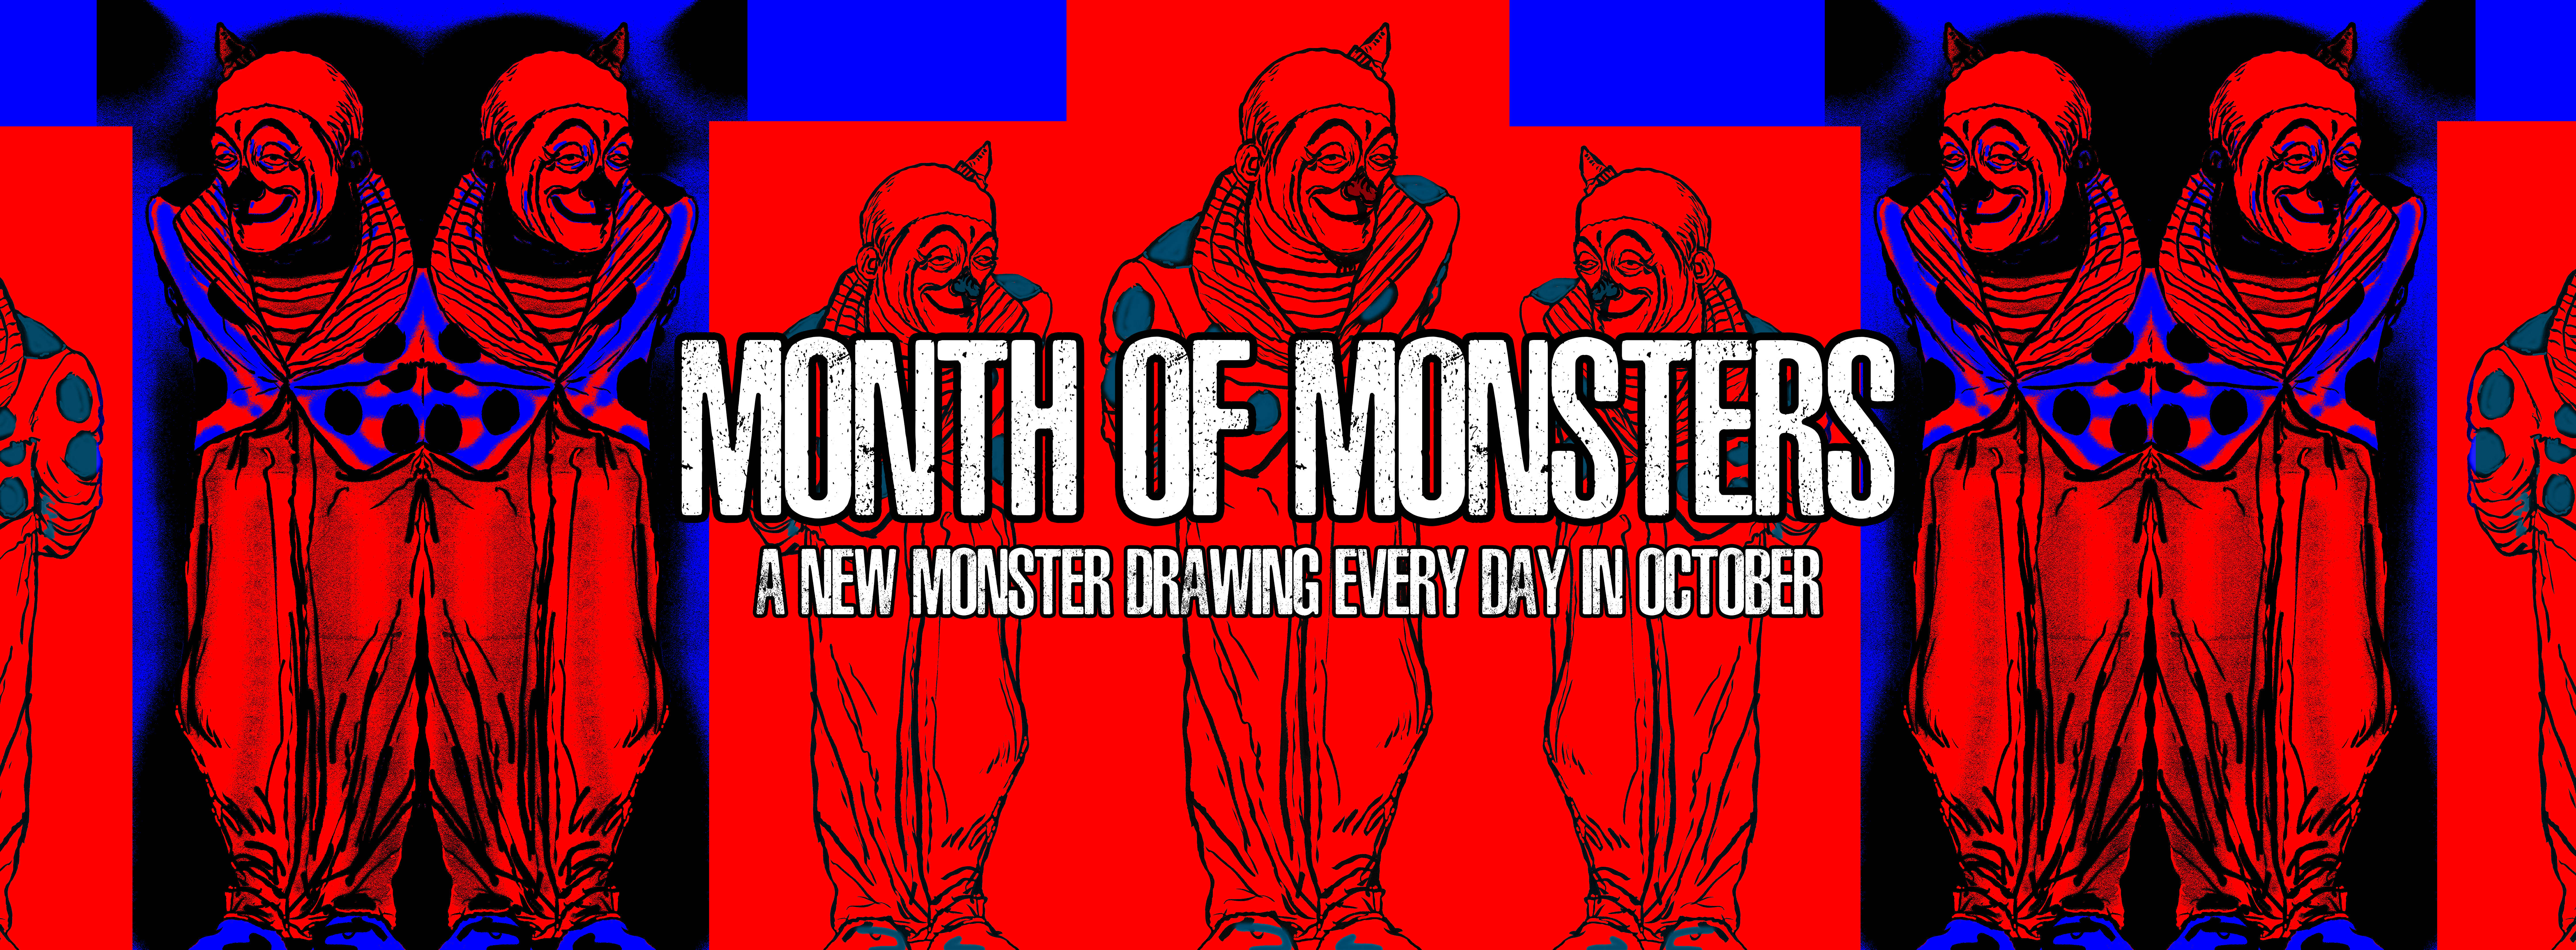 Month of Monsters 2020